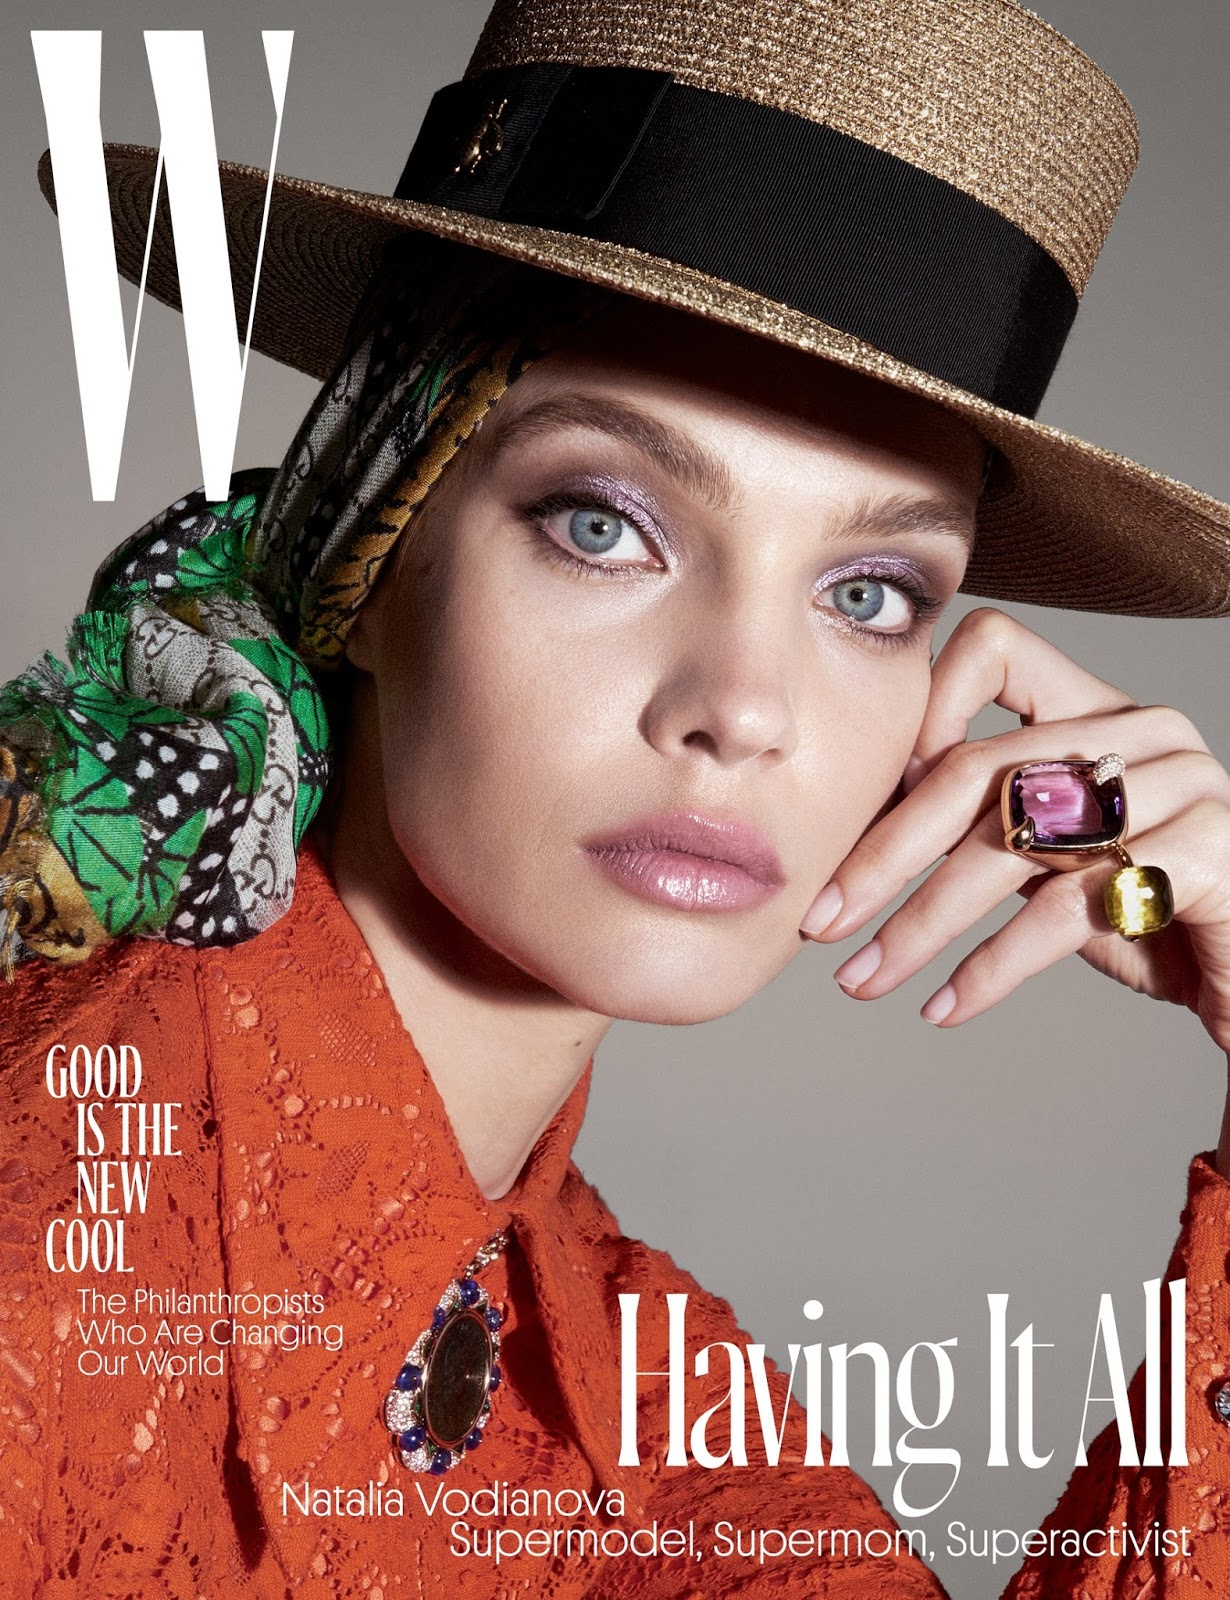 Natalia Vodianova styled by Edward Enninful and photographed by Steven Meisel for W magazine, June/July 2017